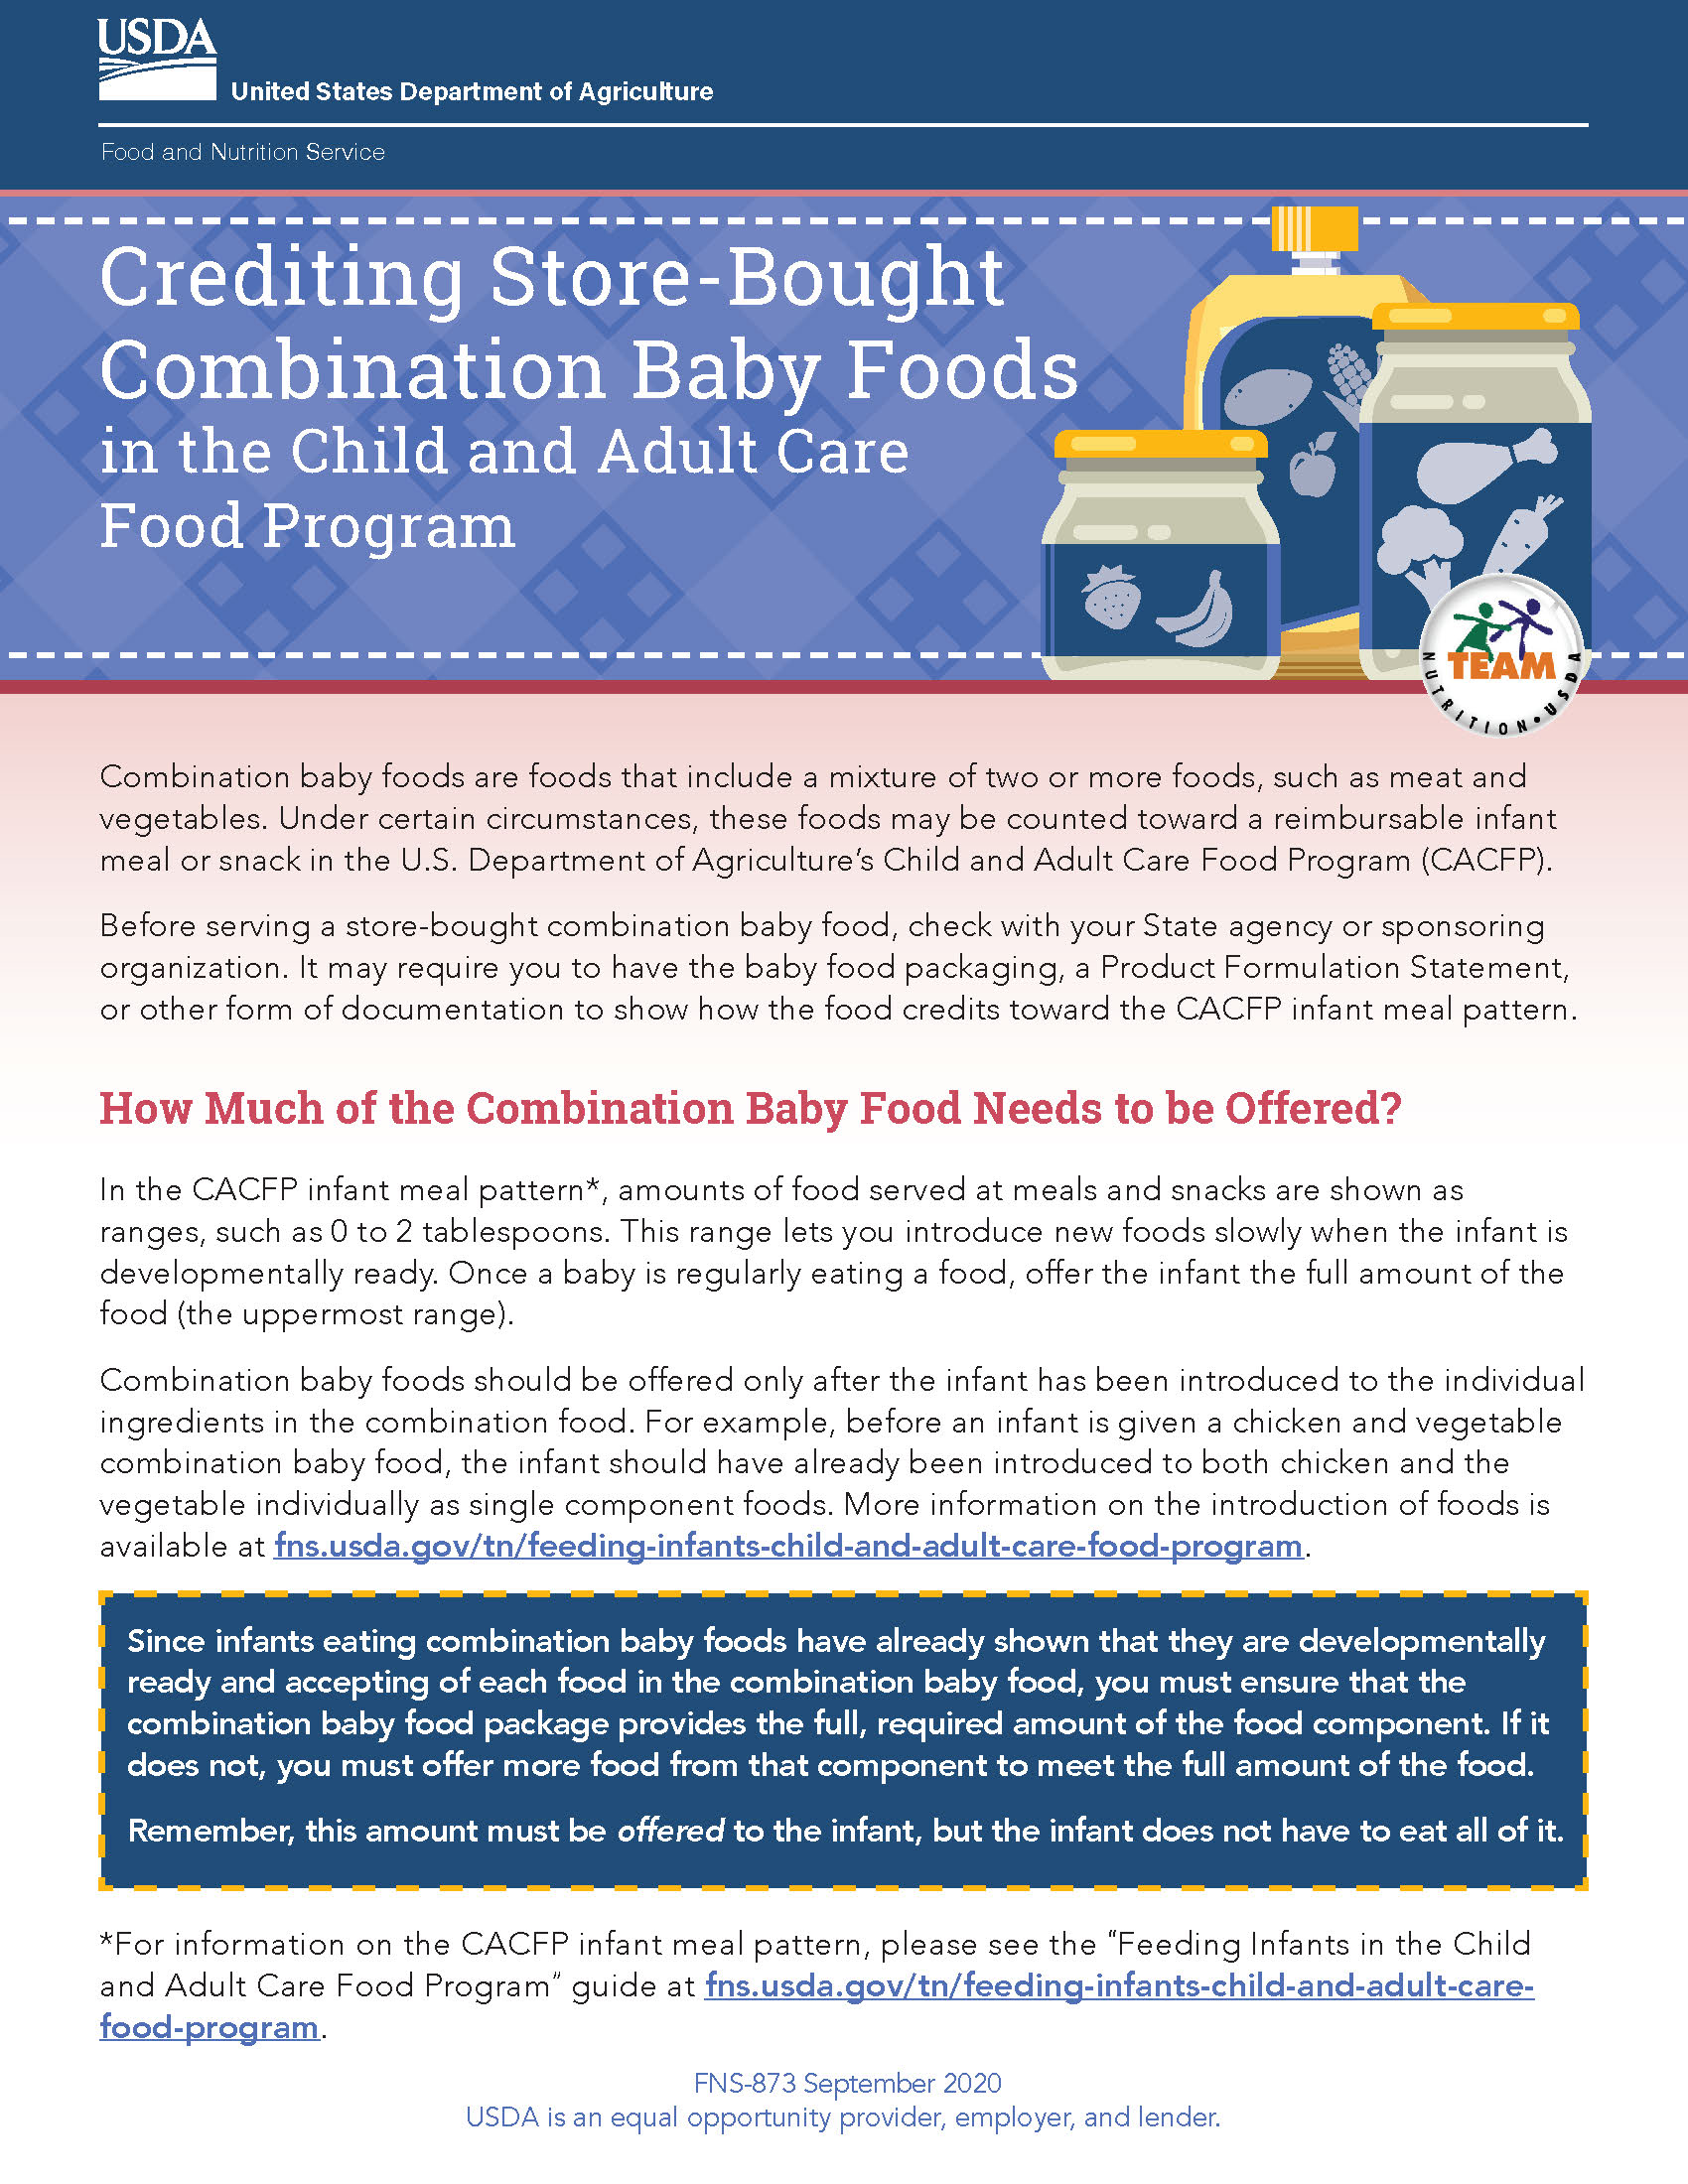 Crediting Store-Bought Combination Baby Foods